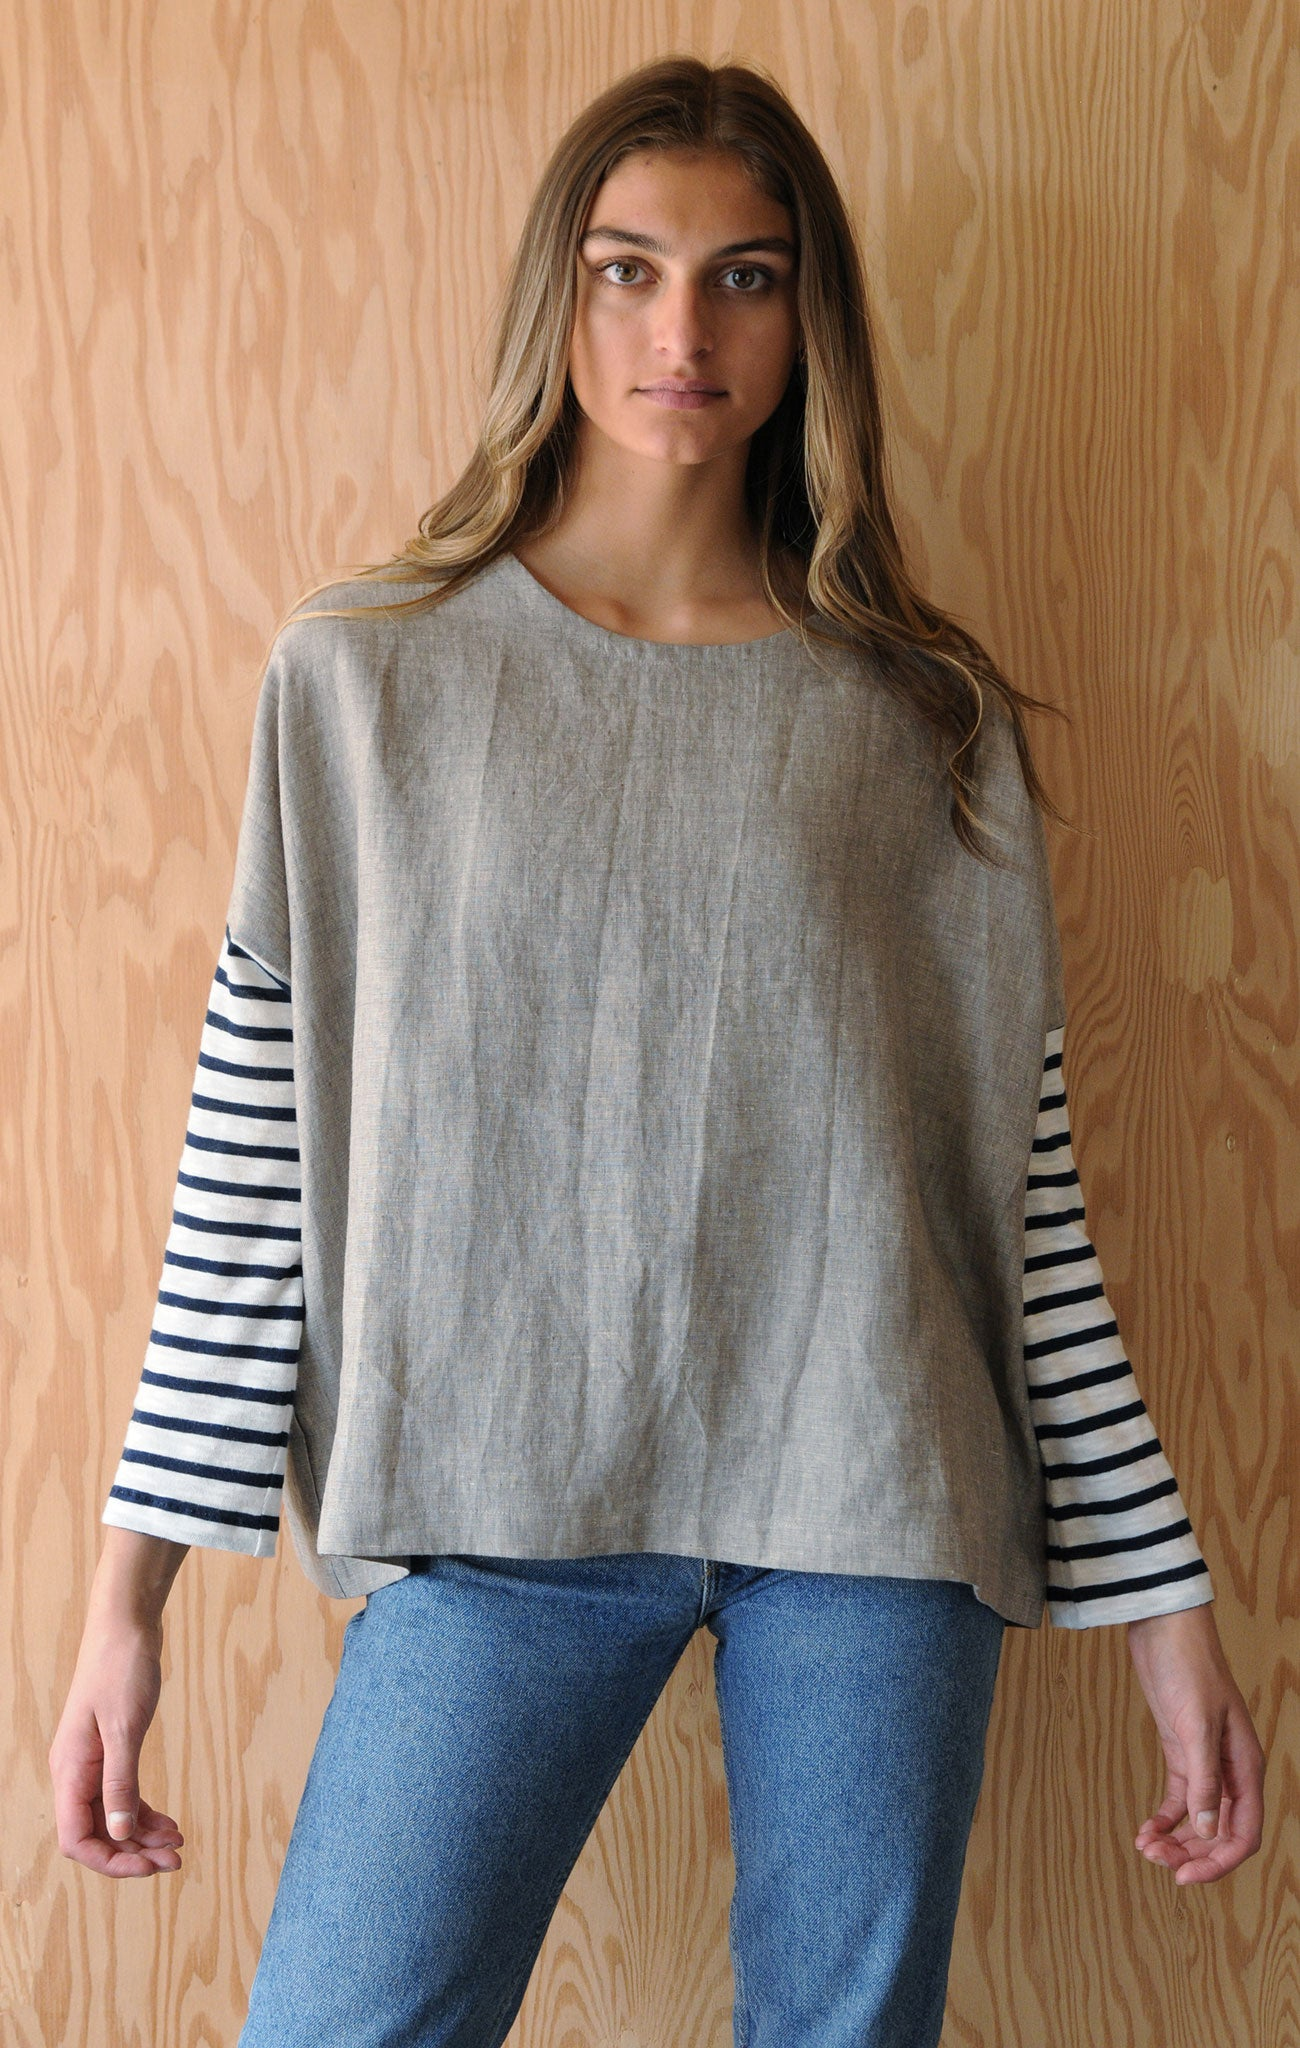 Re-Made Tunic - Sand Beige Linen